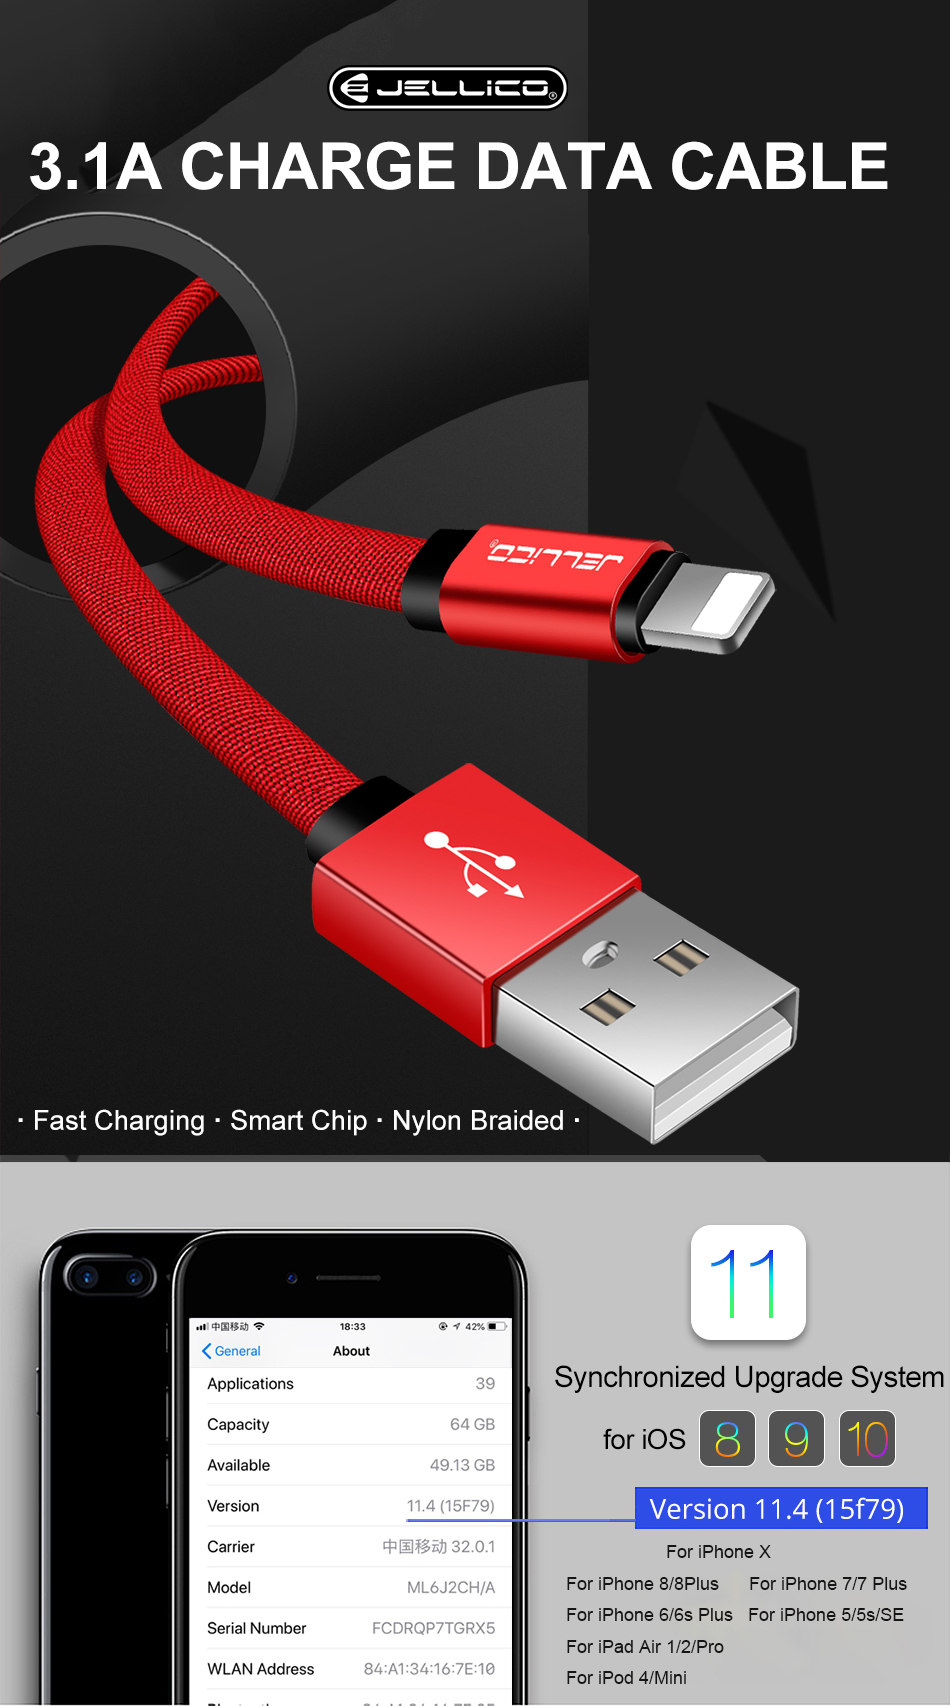 Jellico Usb Cable For X 8 7 6 Plus 31a Fast Charging Mobile Phone Extension Wiring Here At Dhgatecom You Will Find An Enormous Collection Of Cheap Cables Compatible With The Almost Brand Phones Available On